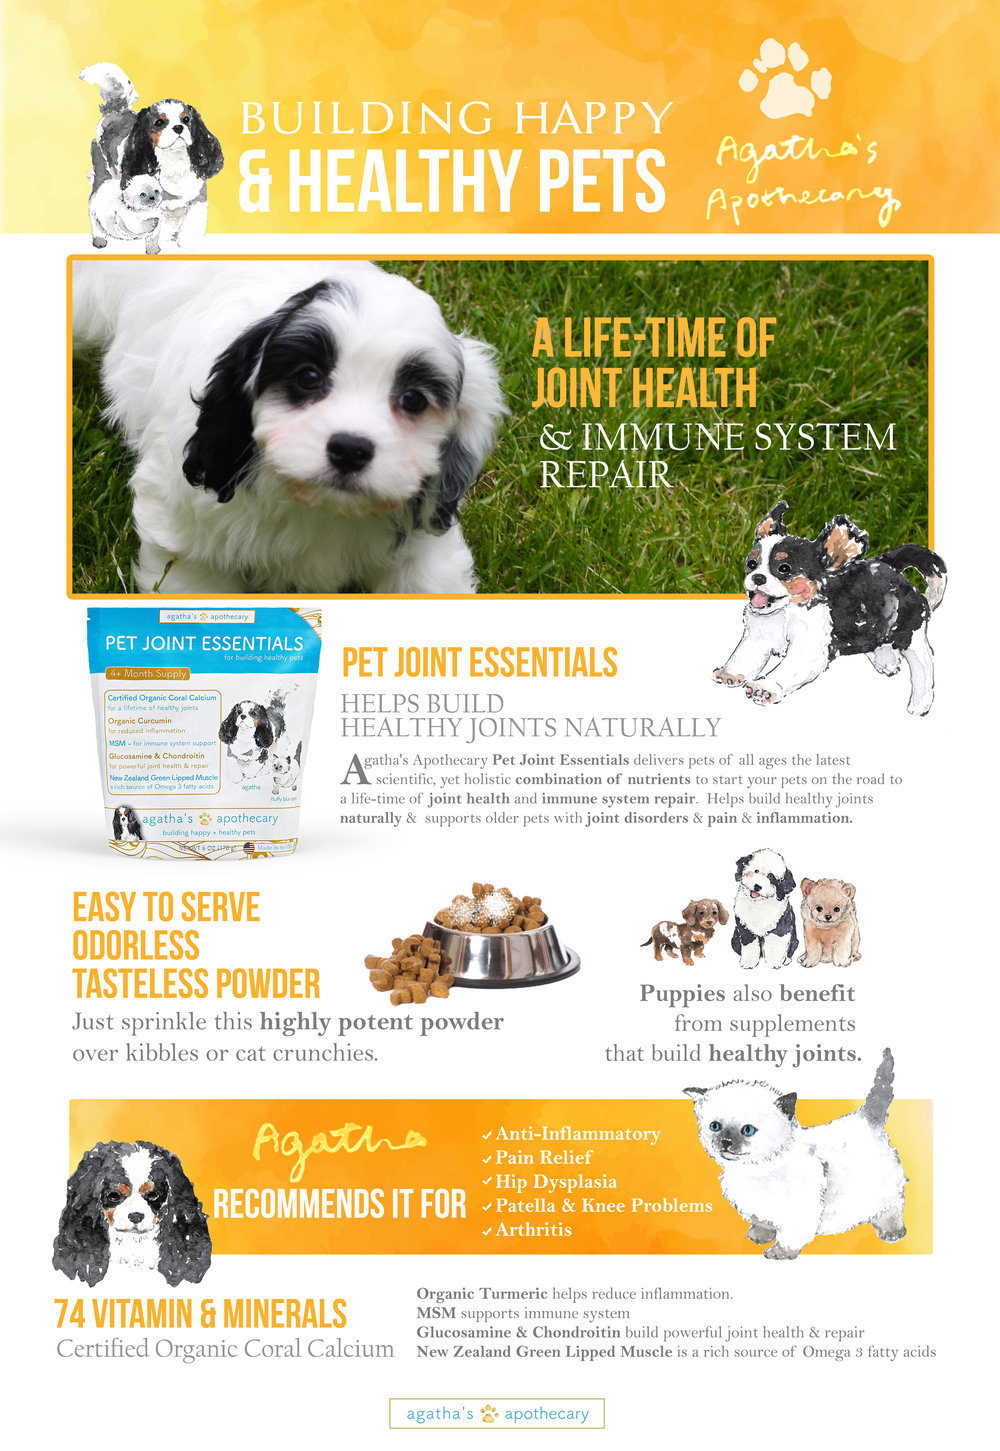 Agatha's Apothecary Pet Joint Essentials